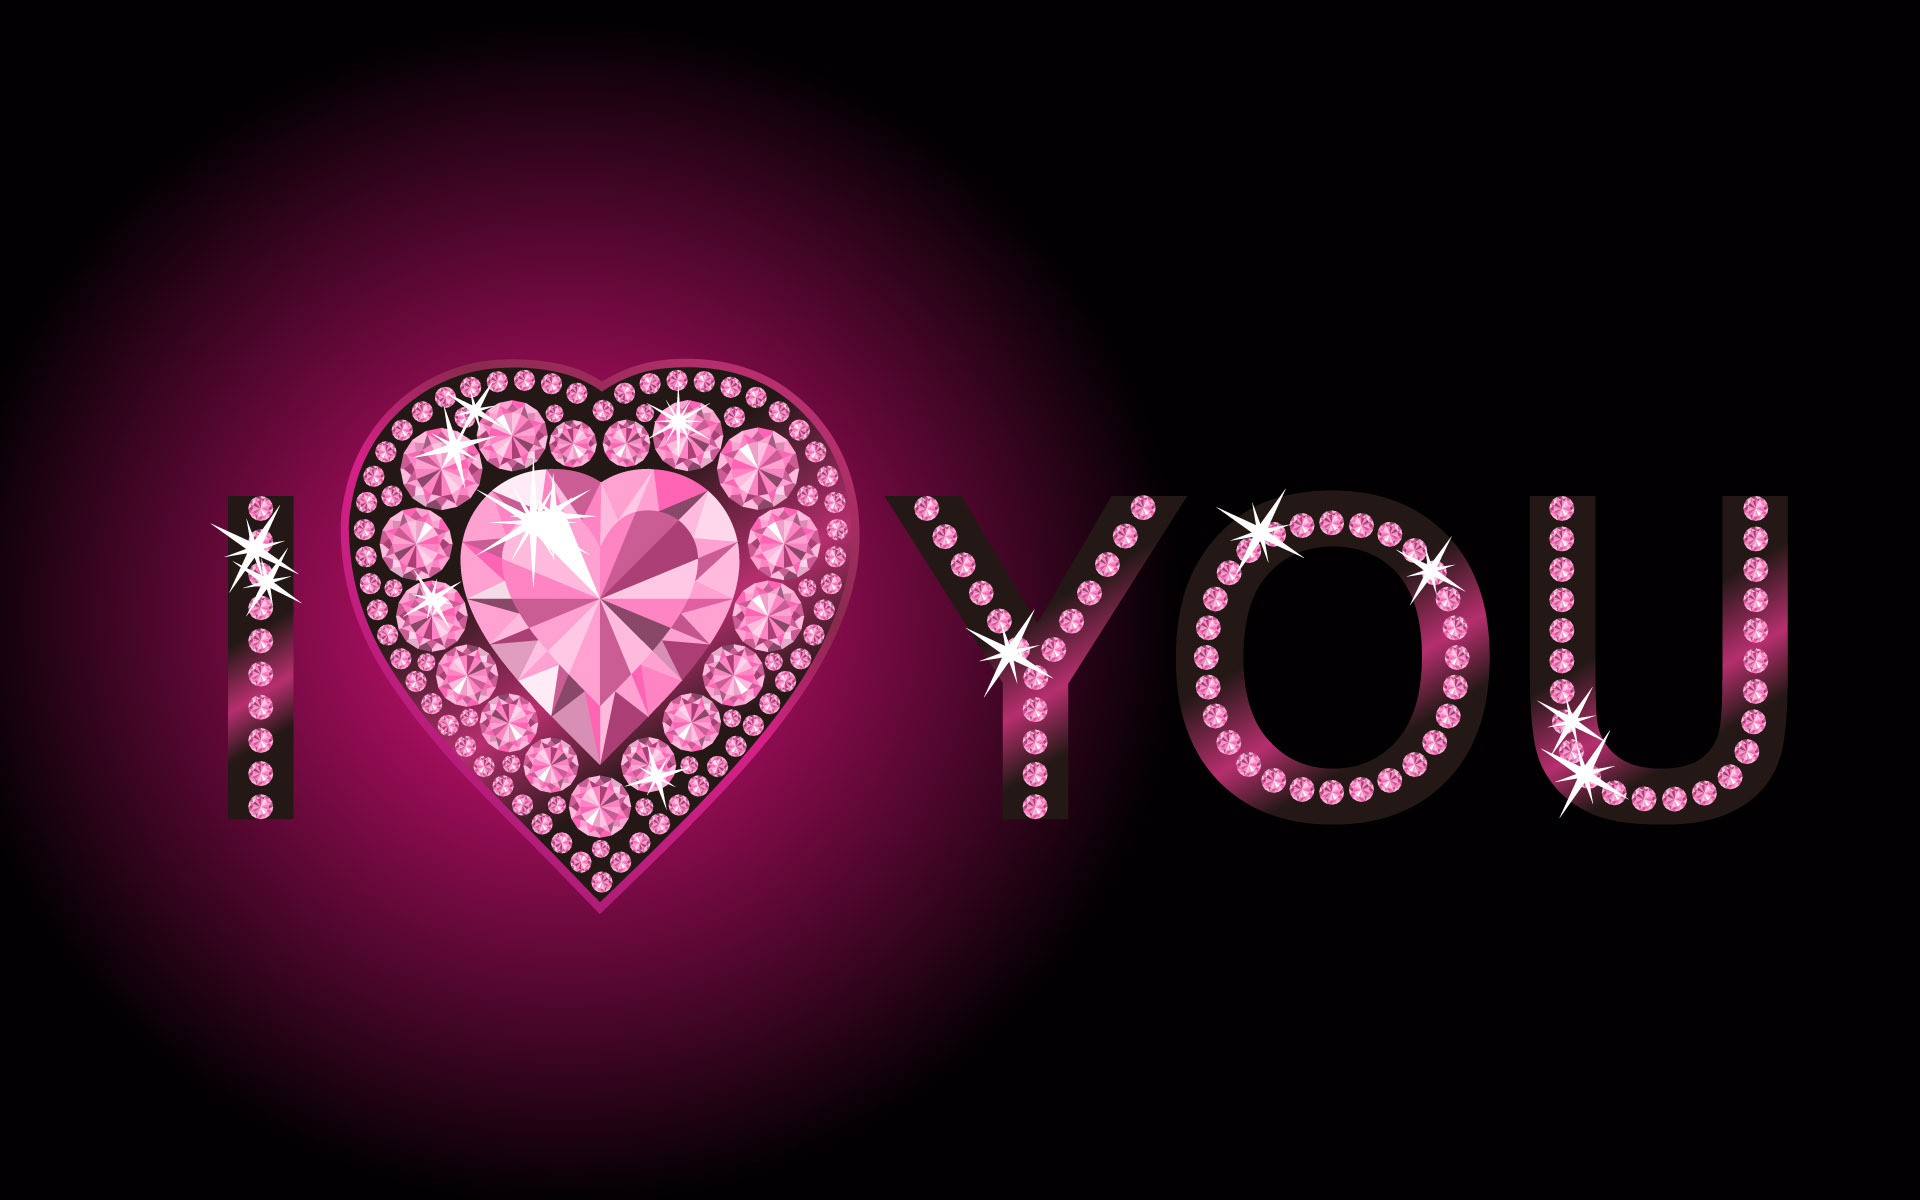 Love Wallpaper For Pc Desktop : I Love You Desktop Wallpaper - Wallpaper, High Definition, High Quality, Widescreen